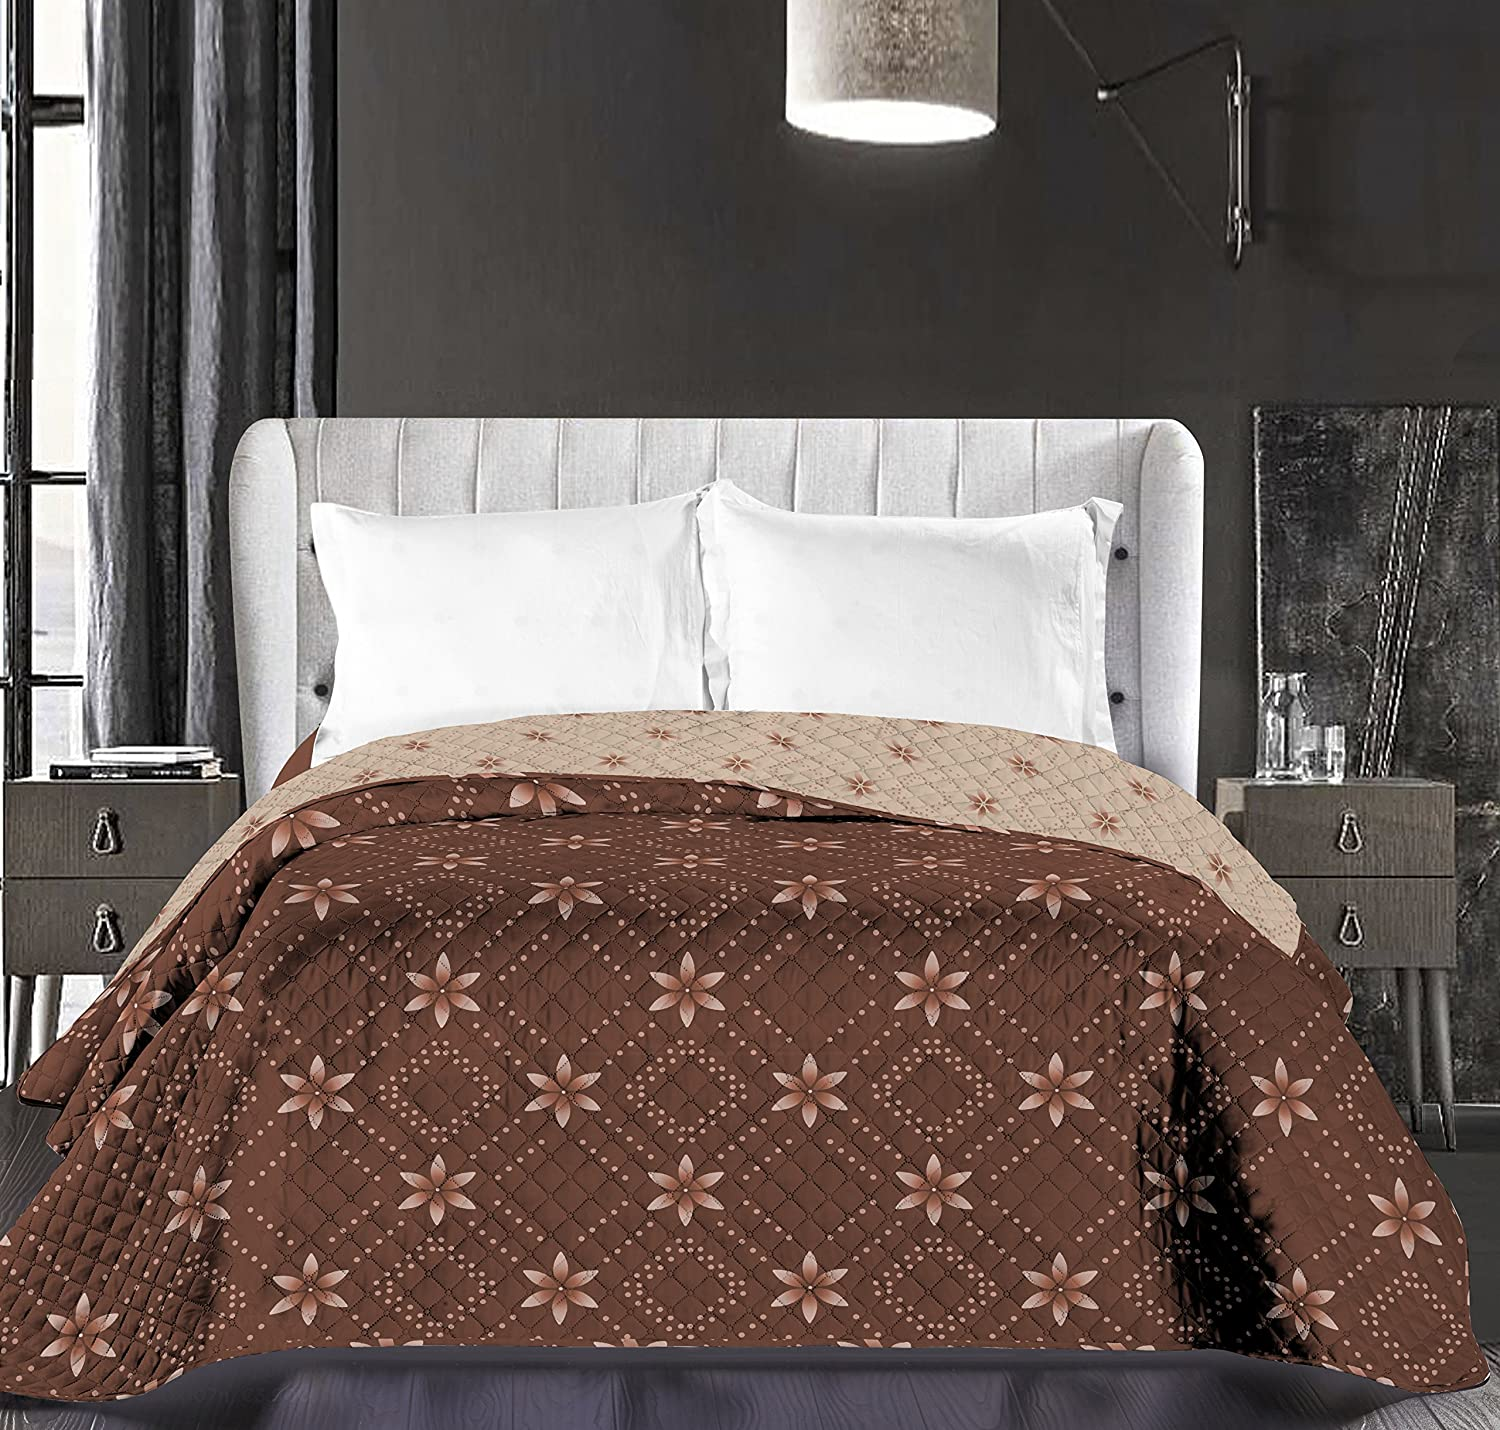 DecoKing Bedspread Beige Cappuccino Brown Chocolate, Reversible Bedspread Easy-care, Flower Floral Pattern Floral Theme Brown Chocolate, Hypnosis Collection Snowy Night, Polyester, Brown/Beige, 220 x 240 cm 86780